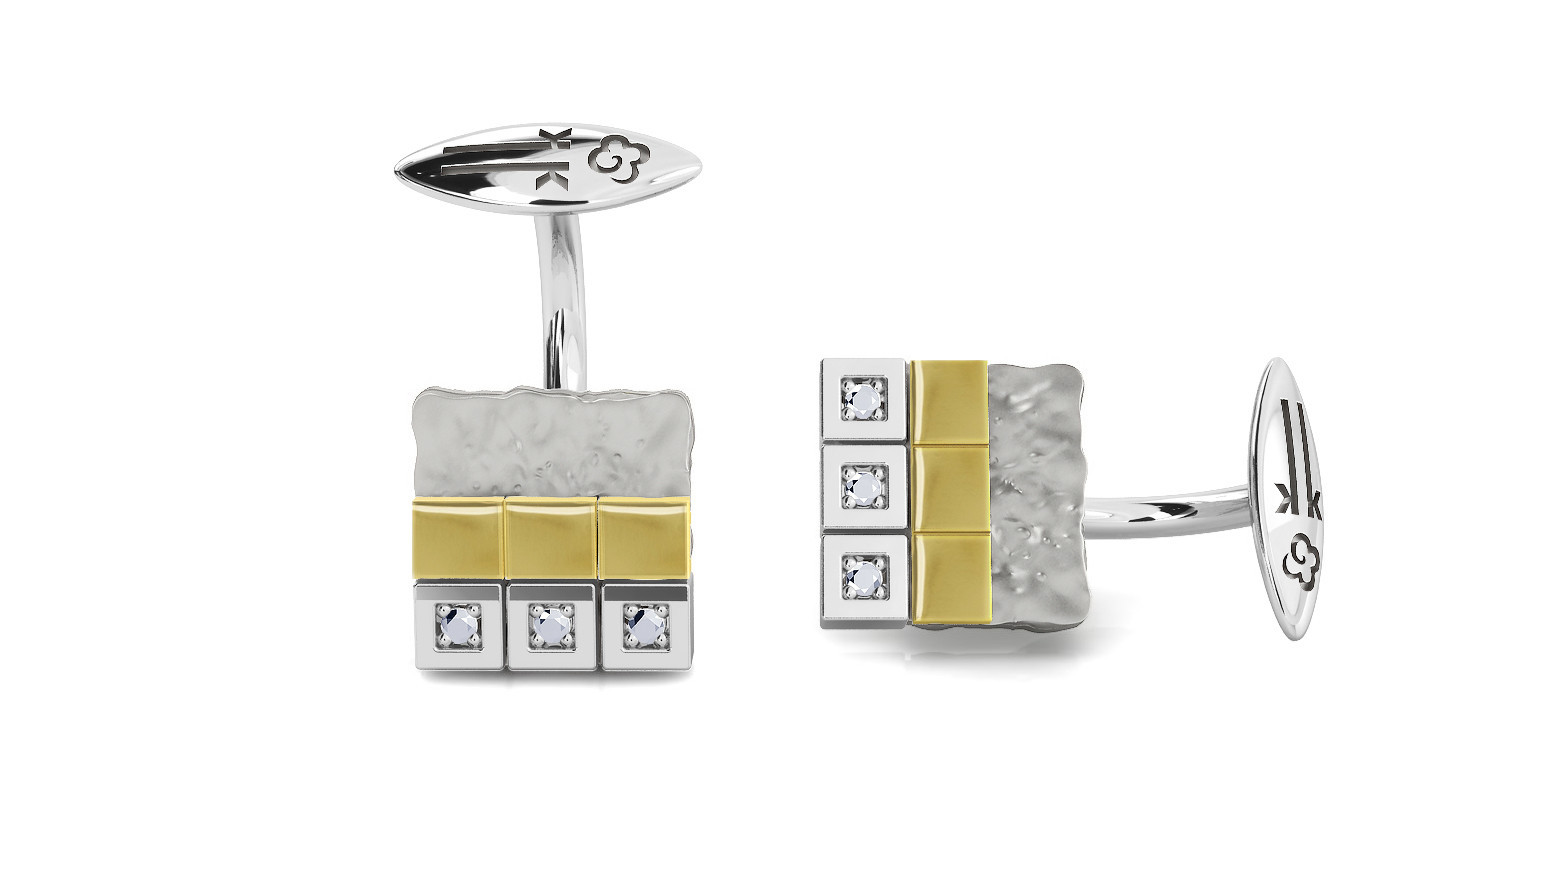 An easy way to help a groom to stand out on his wedding day is through the use of fashionable cufflinks such as these from Spanish brand Kukka.